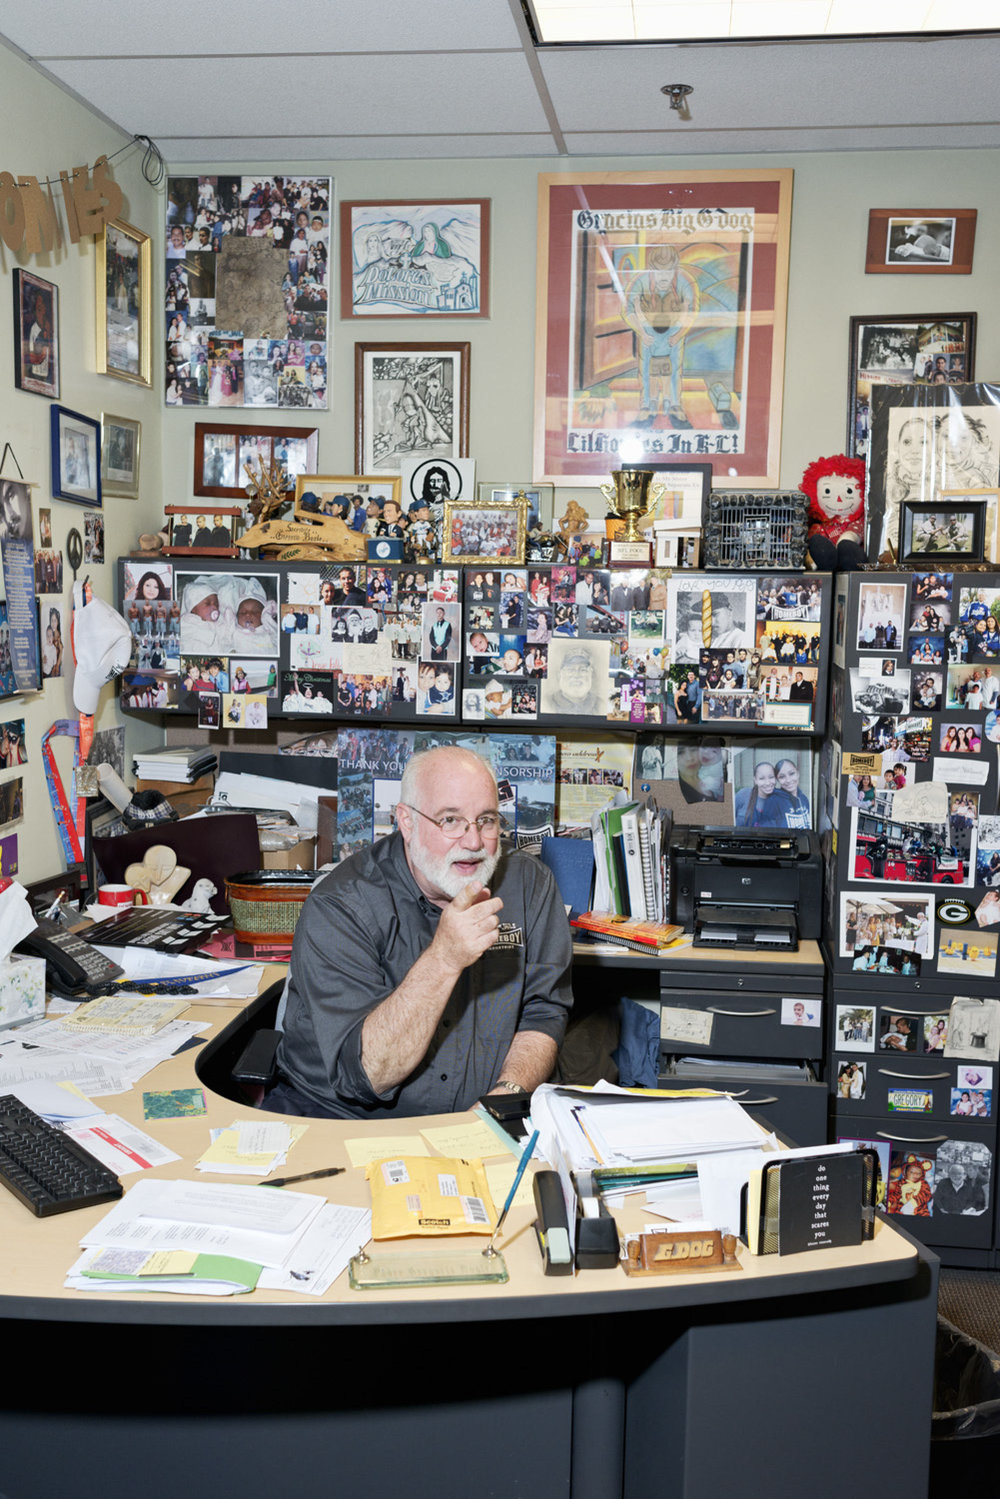 Feature onFather Greg Boyle and his Los Angeles Based non-profit, Homeboy Industries, which helps give jobs and rehabilitation to former gang members and the formerly incarcerated. H.I. has an onsite bakery, free tattoo removal service, cafe and classrooms. Photographed for Los Angeles Magazine.